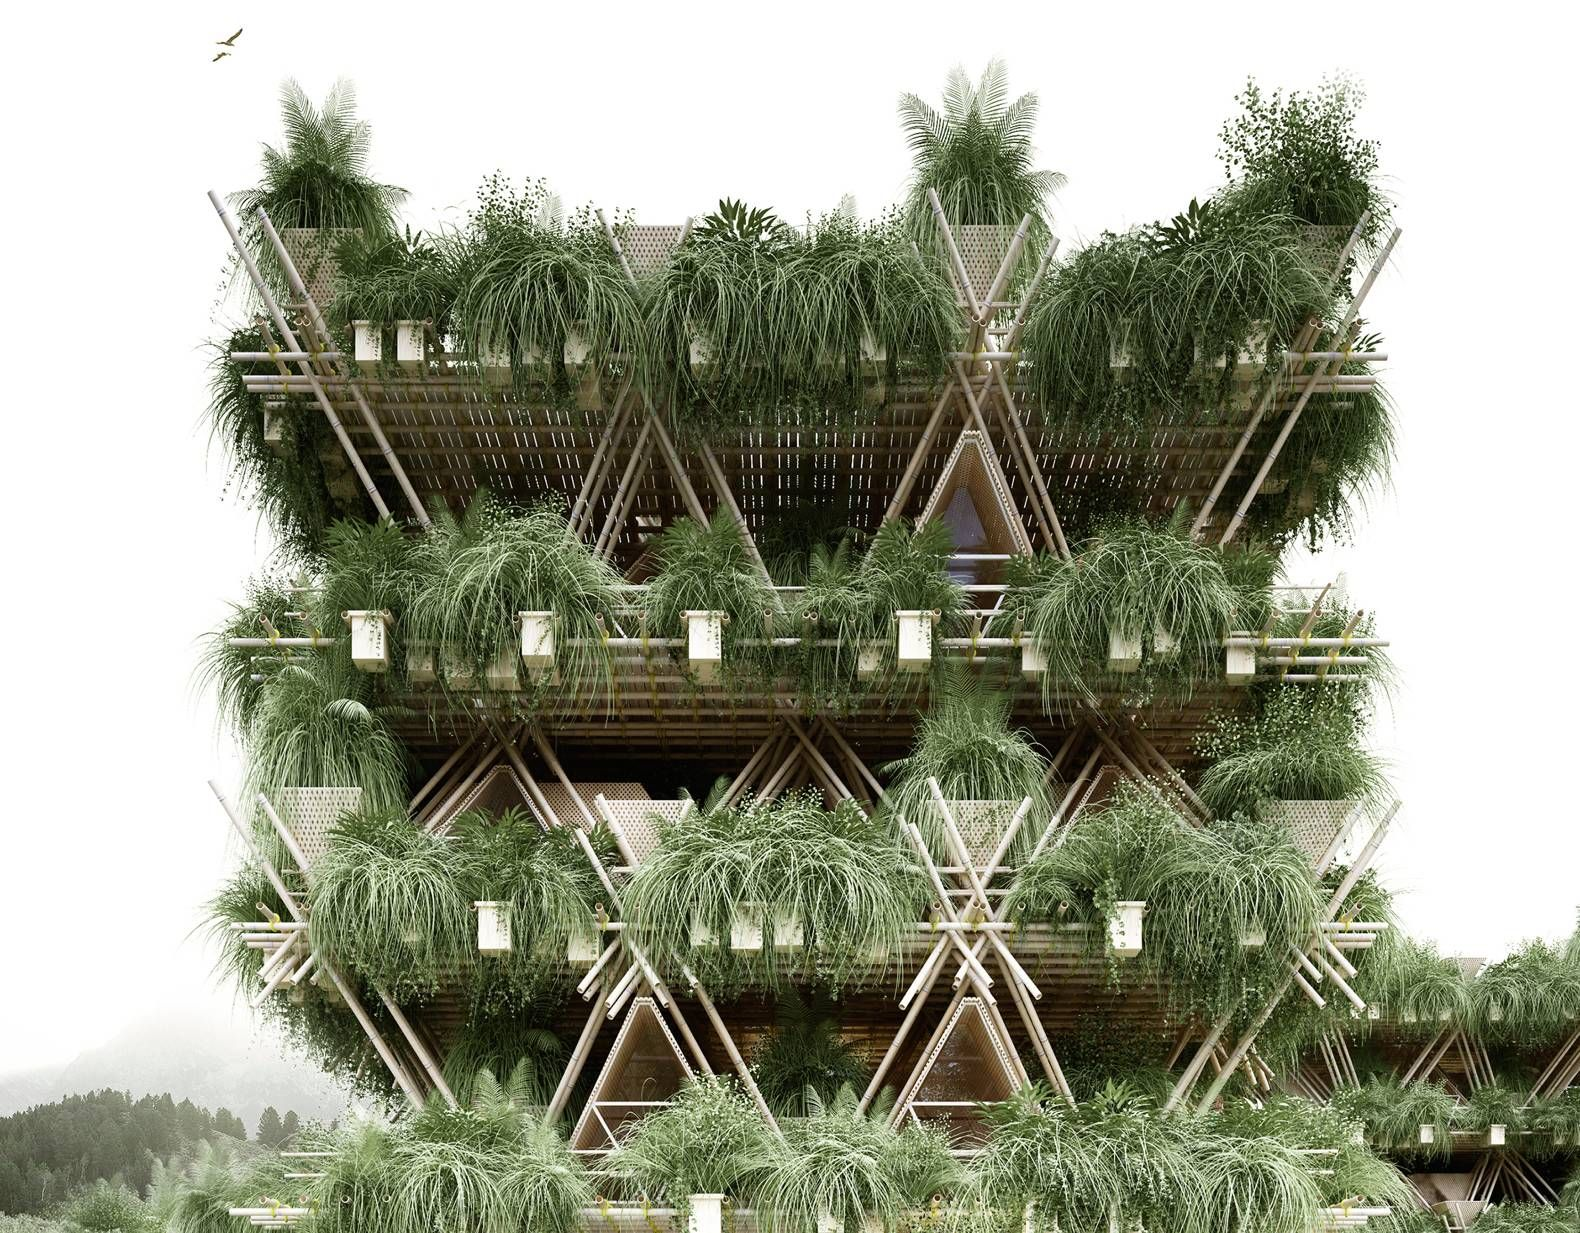 Bamboo structure the bamboo structure is suited - Penda Unveils Its Vision For A 20 000 Person City Constructed Entirely From Bamboo